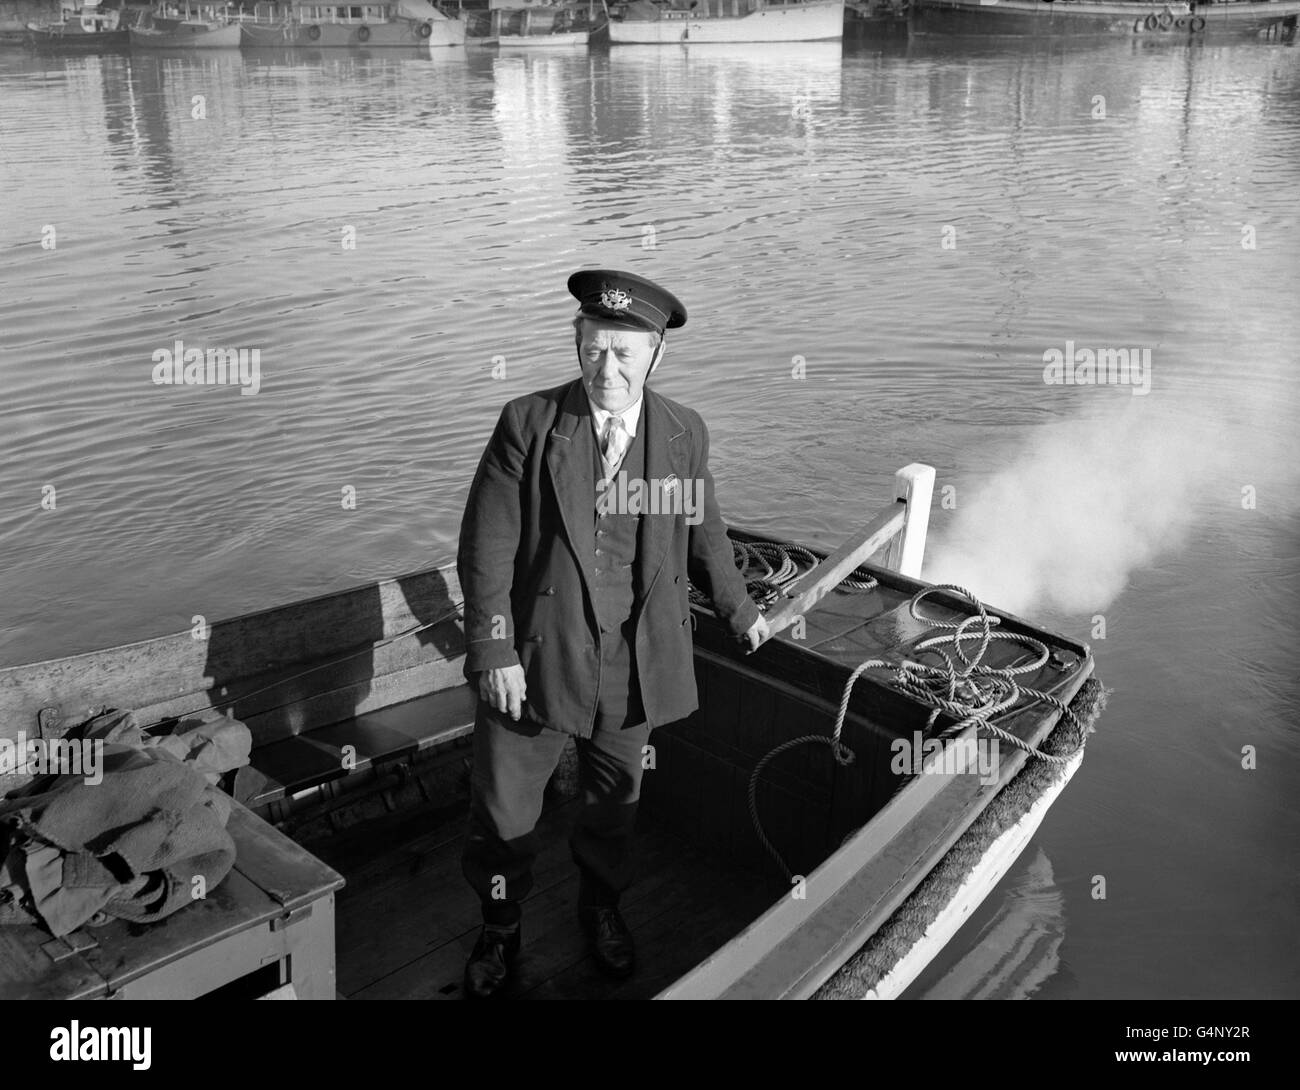 Royal Mail - Boat Postman - Poole Harbour - Stock Image